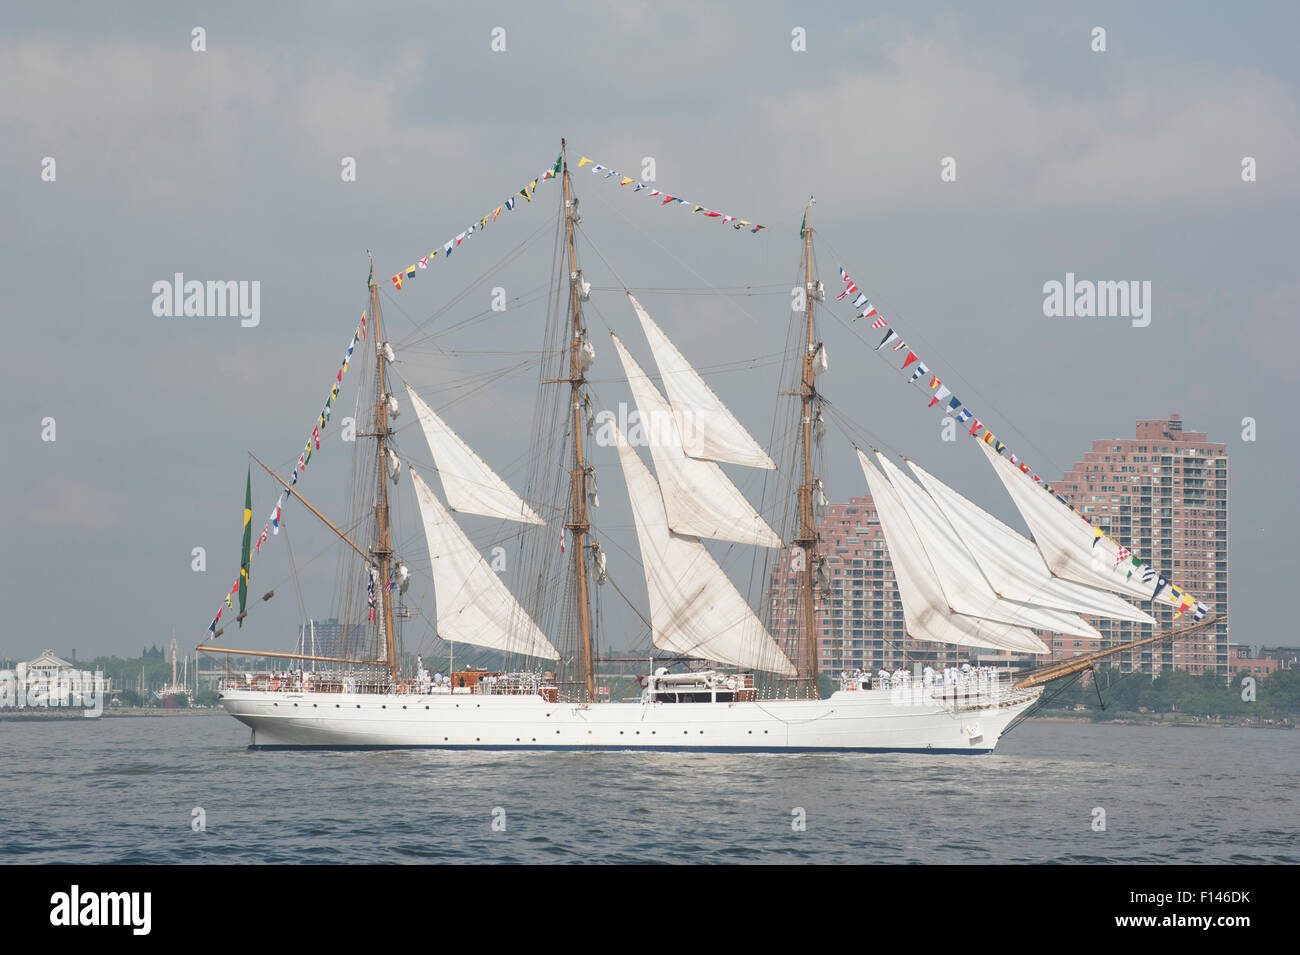 Cisne Branco, a tall ship belonging to the Brazilian Navy, during Op Sail 2012, going up the Hudson River. - Stock Image